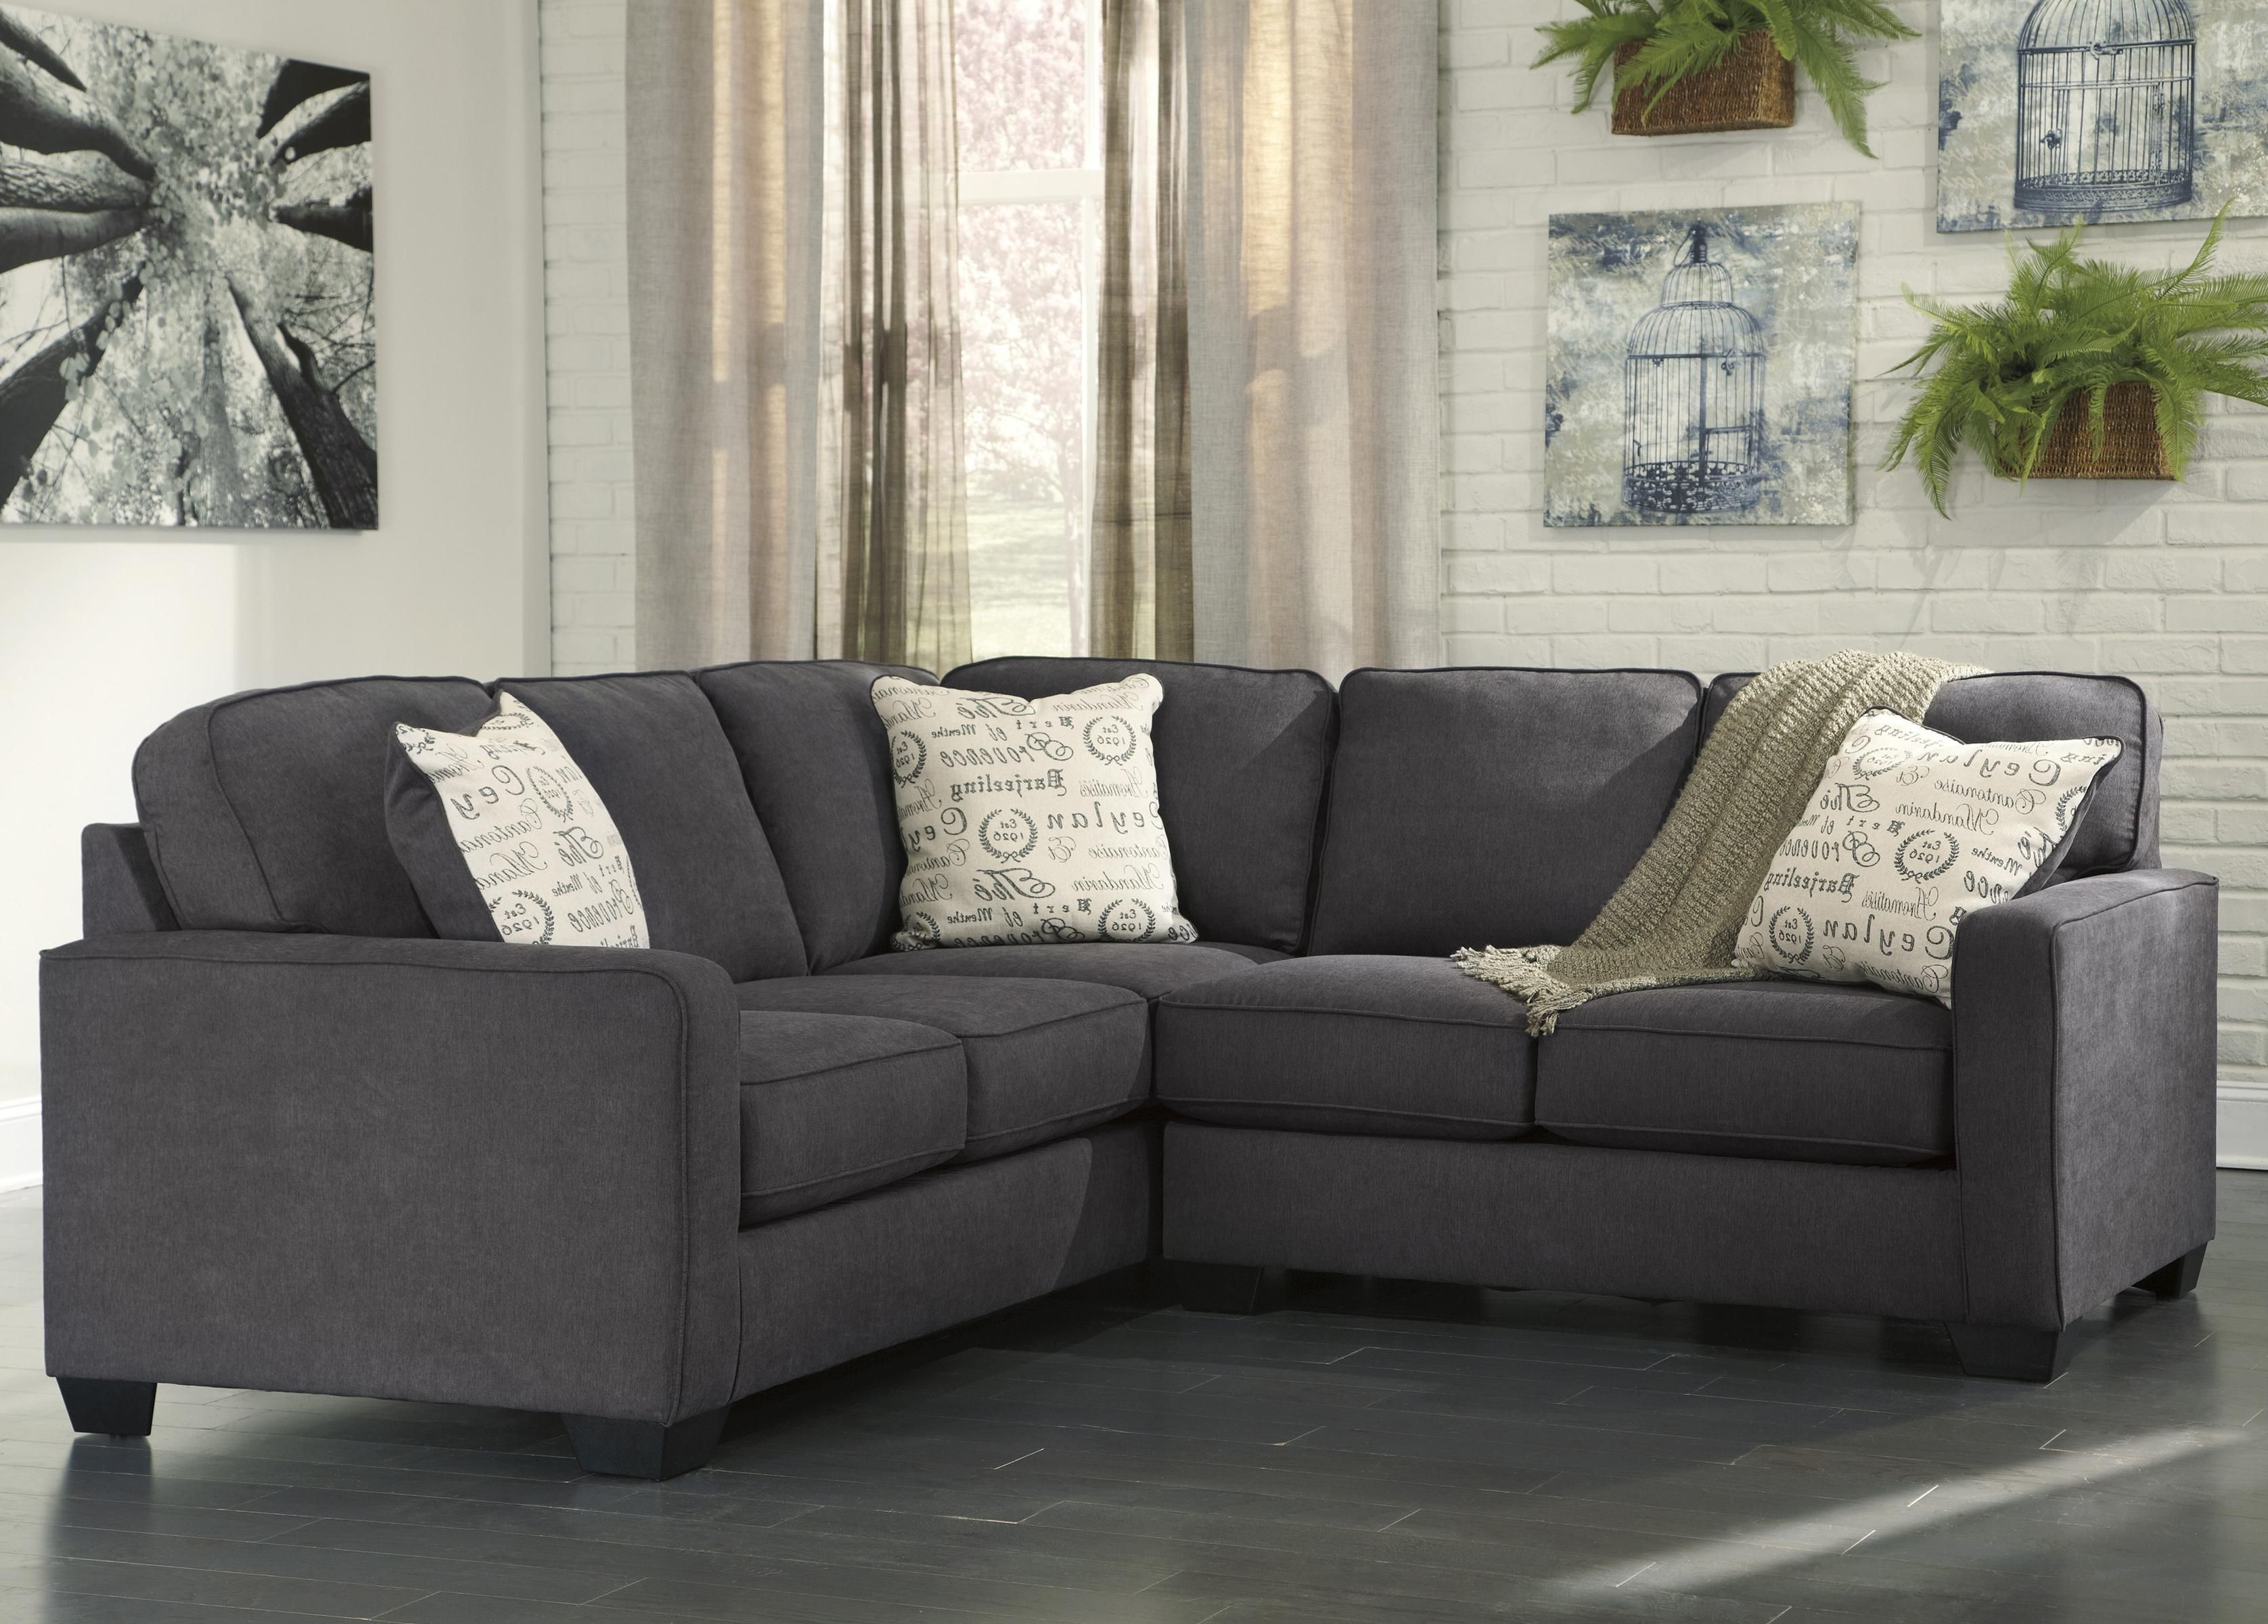 Alenya Charcoal 2 Piece Sectional With Right Loveseat By Signature Design By Ashley 2 Piece Sectional Sofa Sofa Design Sectional Sofa